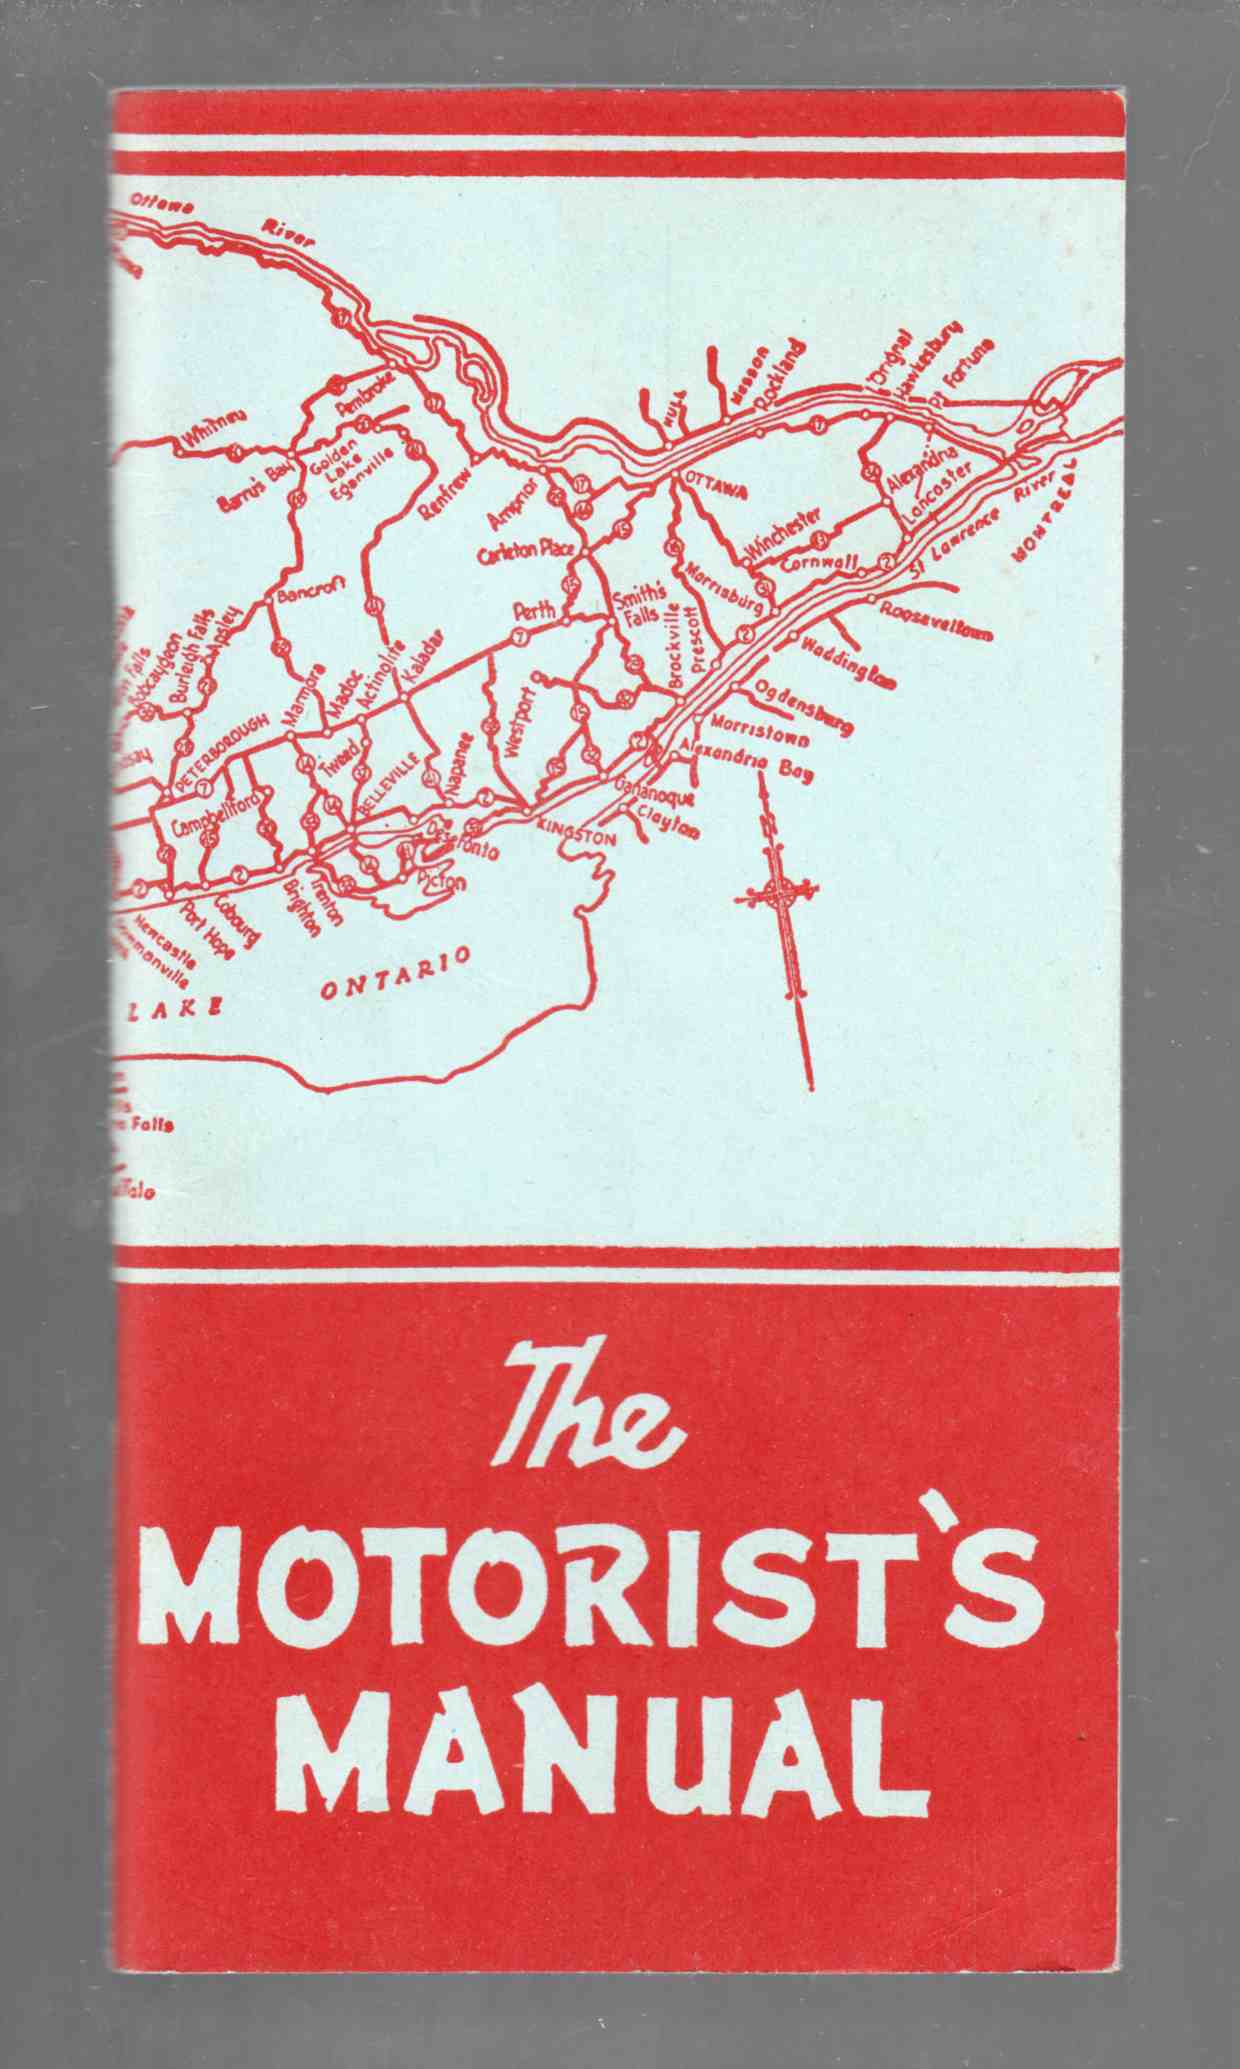 Image for The Motorist's Manual A Guide to Better Motoring Dedicated to the Safety of all Users of Ontario Highways